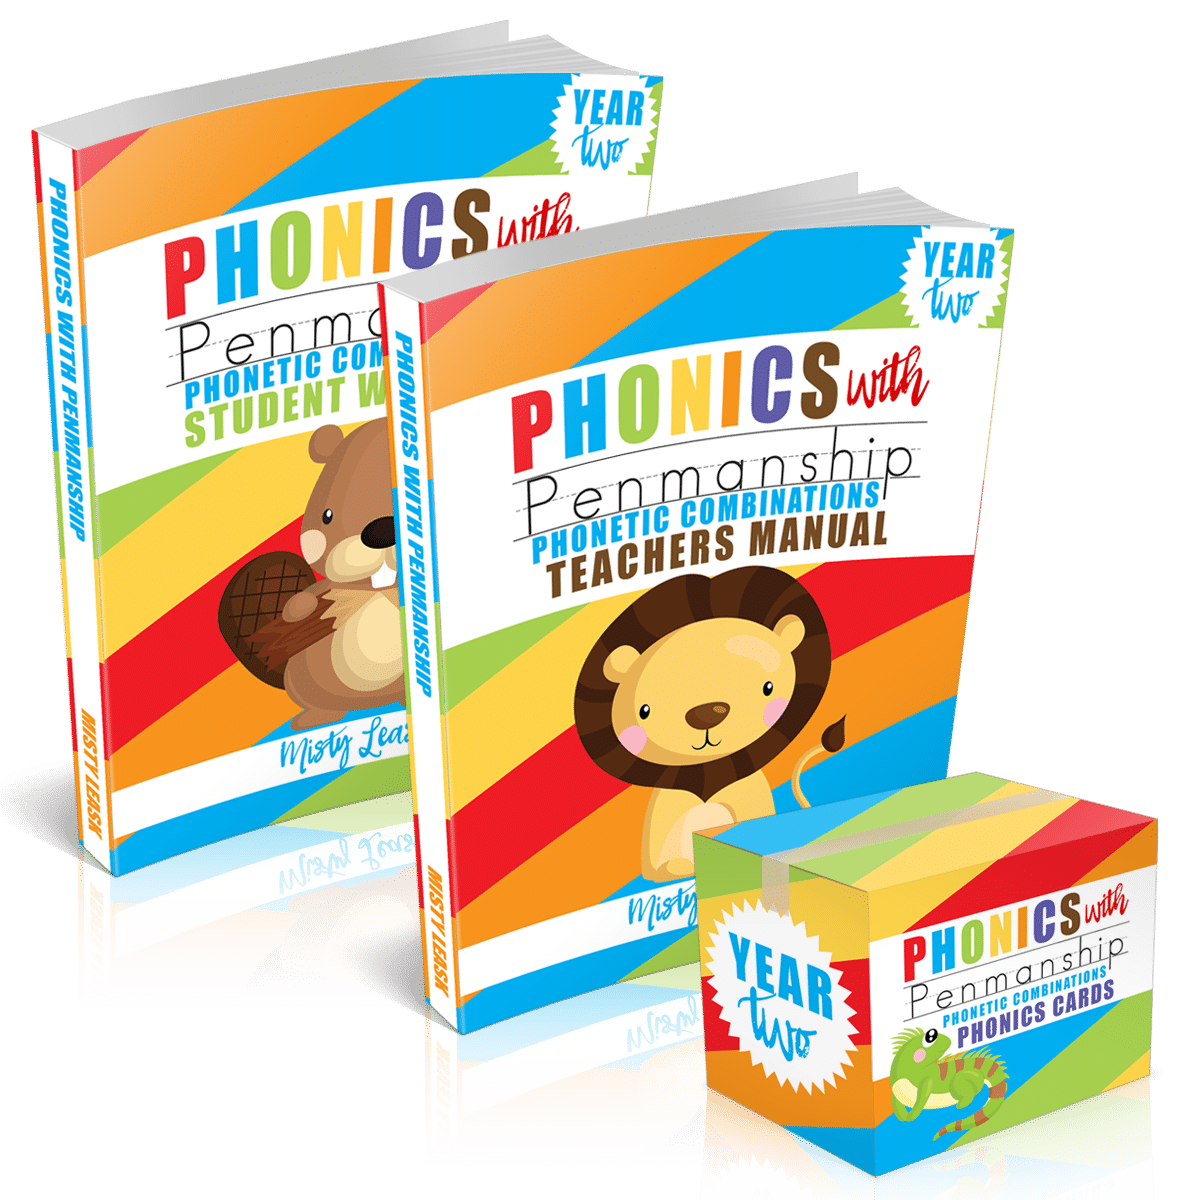 Phonics with Penmanship Year Two